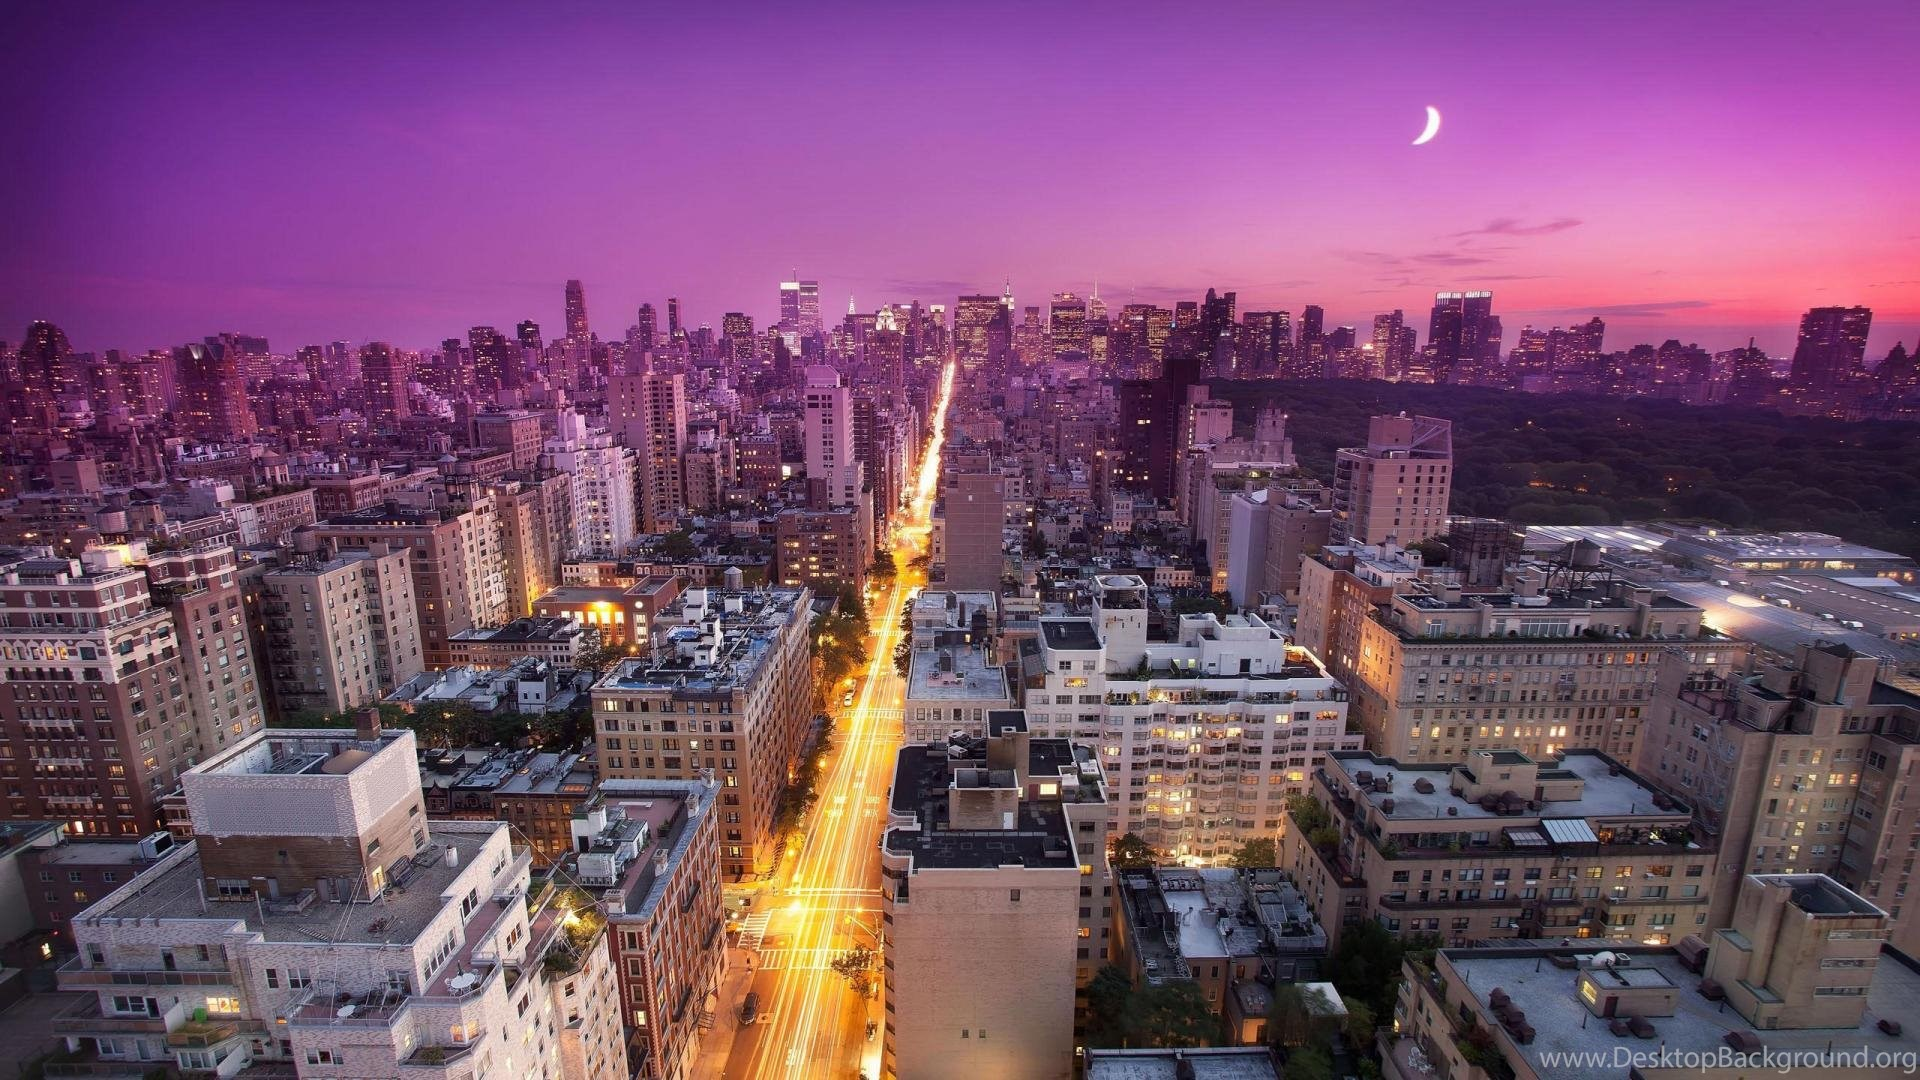 40 Hd New York City Wallpapers Backgrounds For Free Download Desktop Background